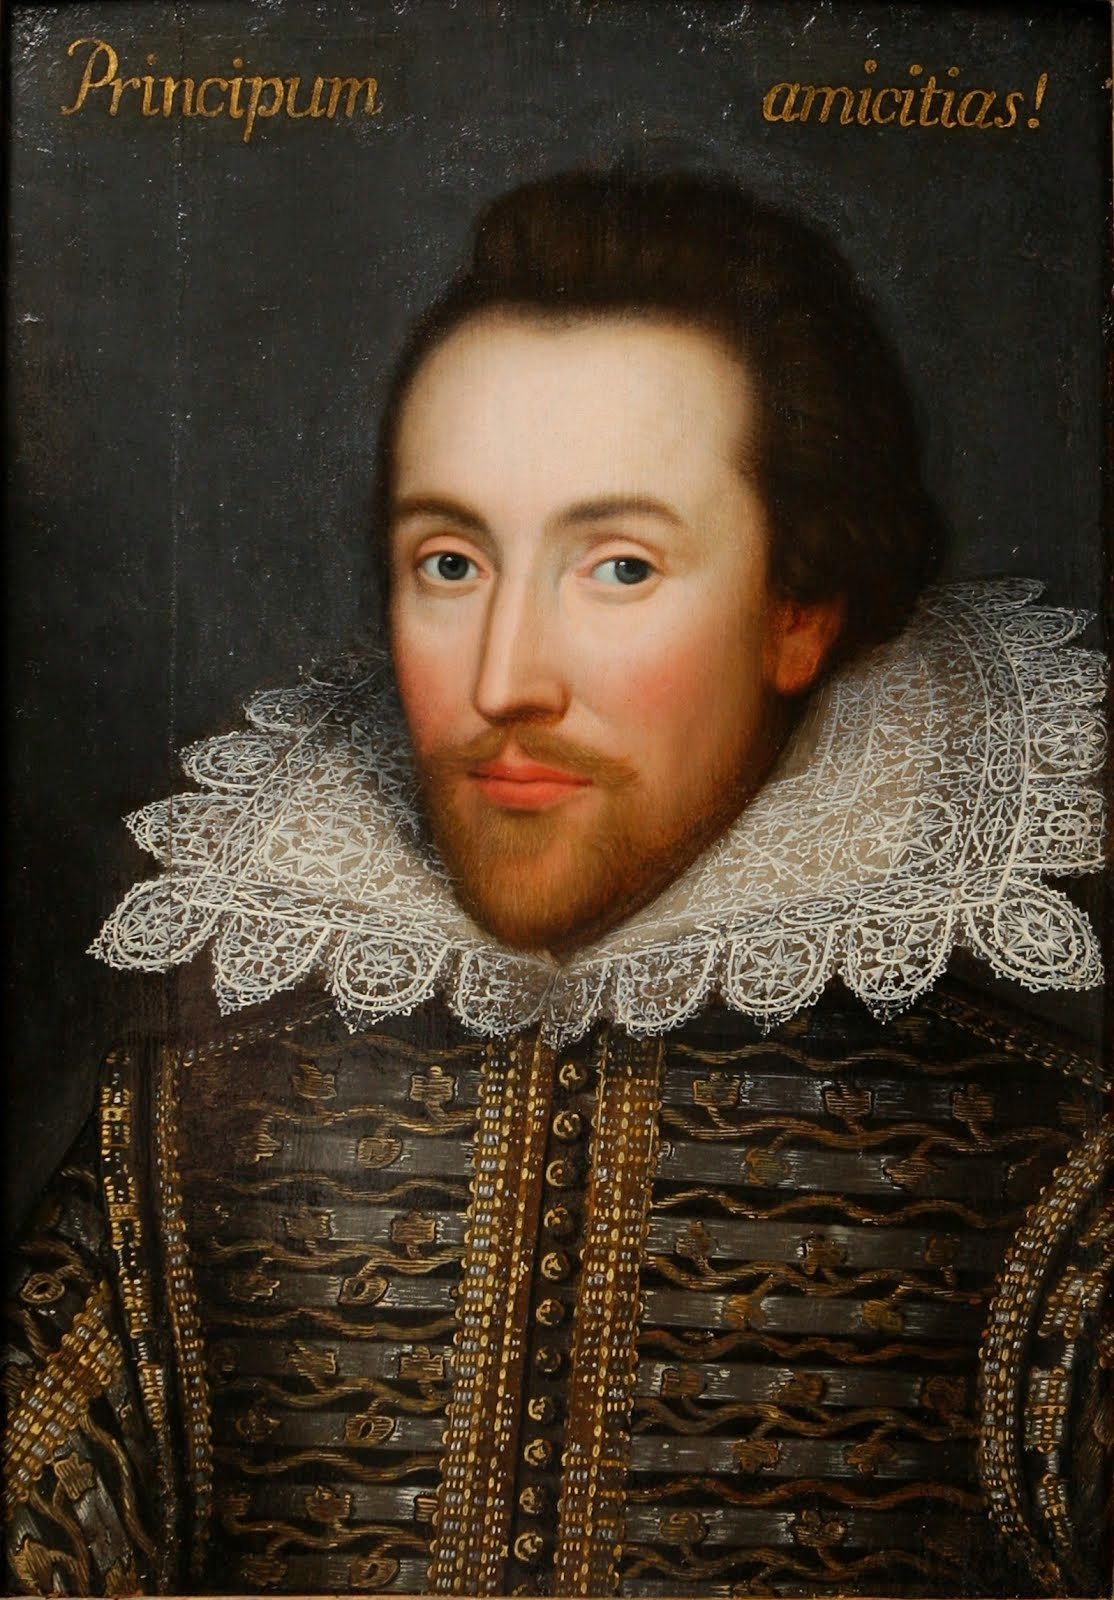 What did William Shakespeare look like? Click the image and survey the suspects.